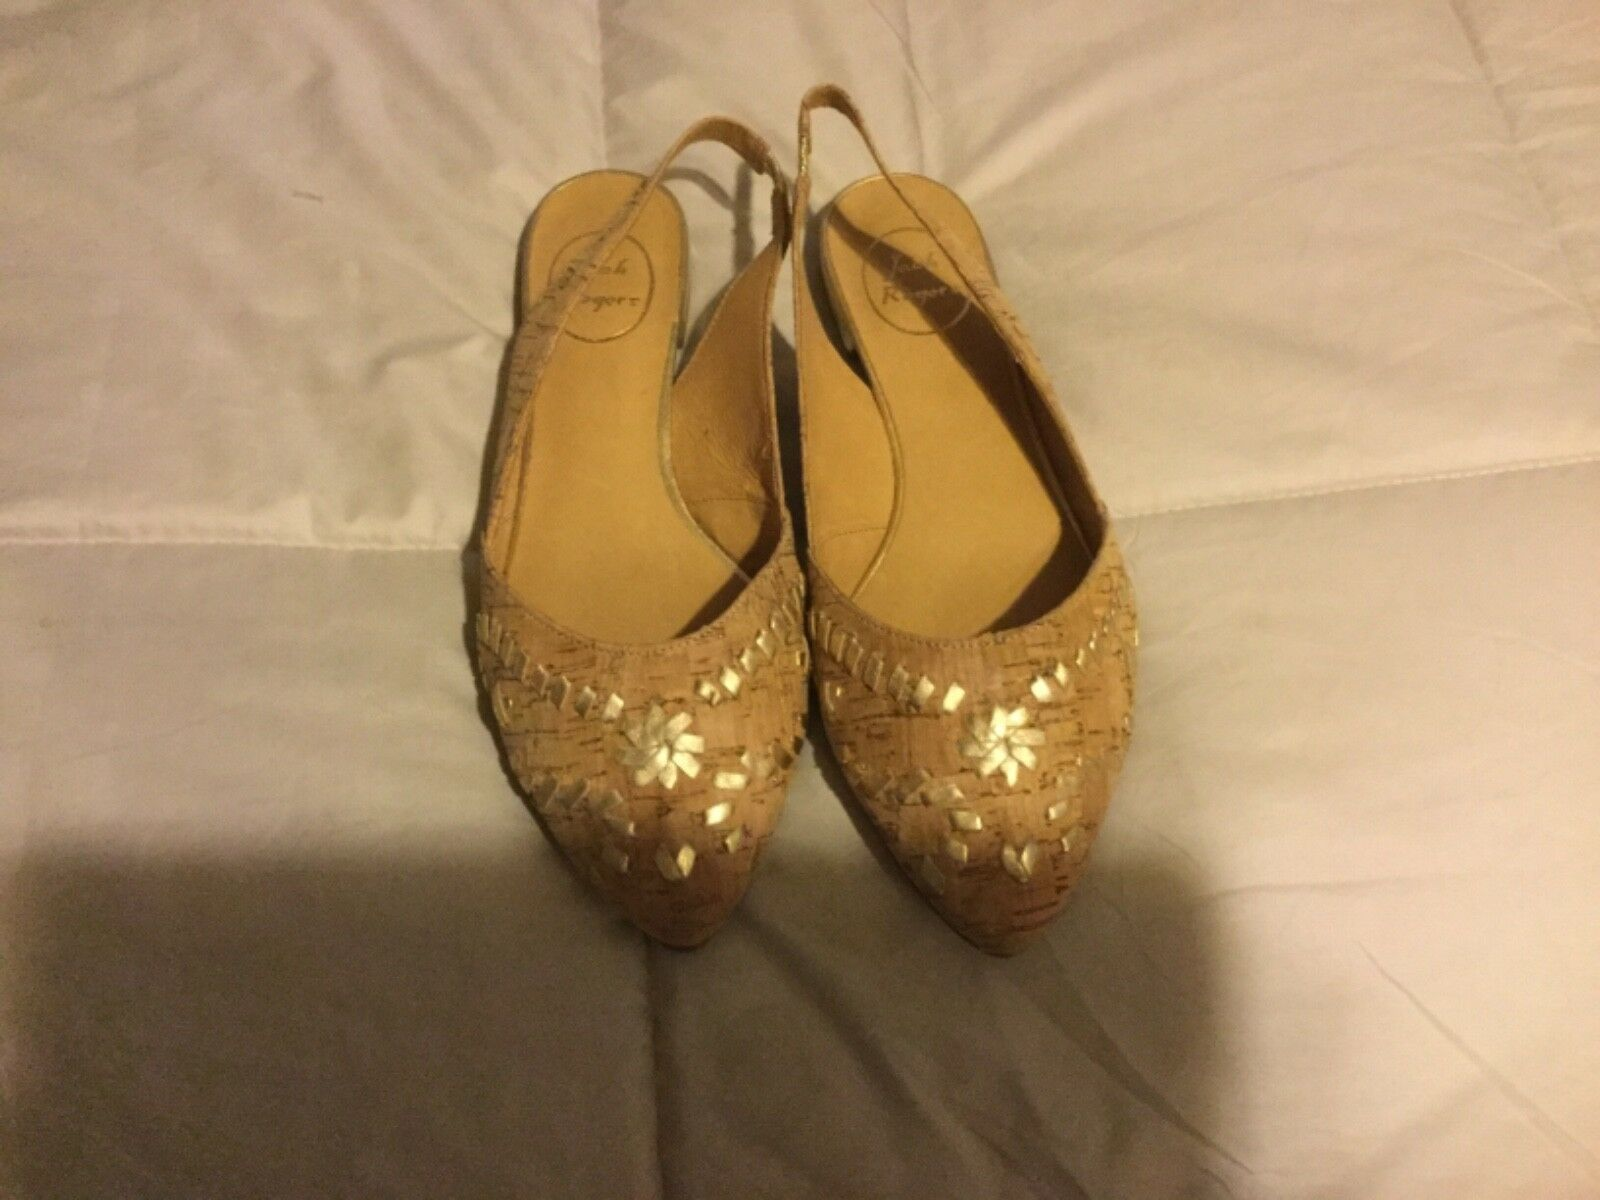 Jack Slingback Rogers Cork  Gold Pointed Toe Slingback Jack Shoes/Flats-Size 8M-'Rory' 9 1/2M 5fa5cd